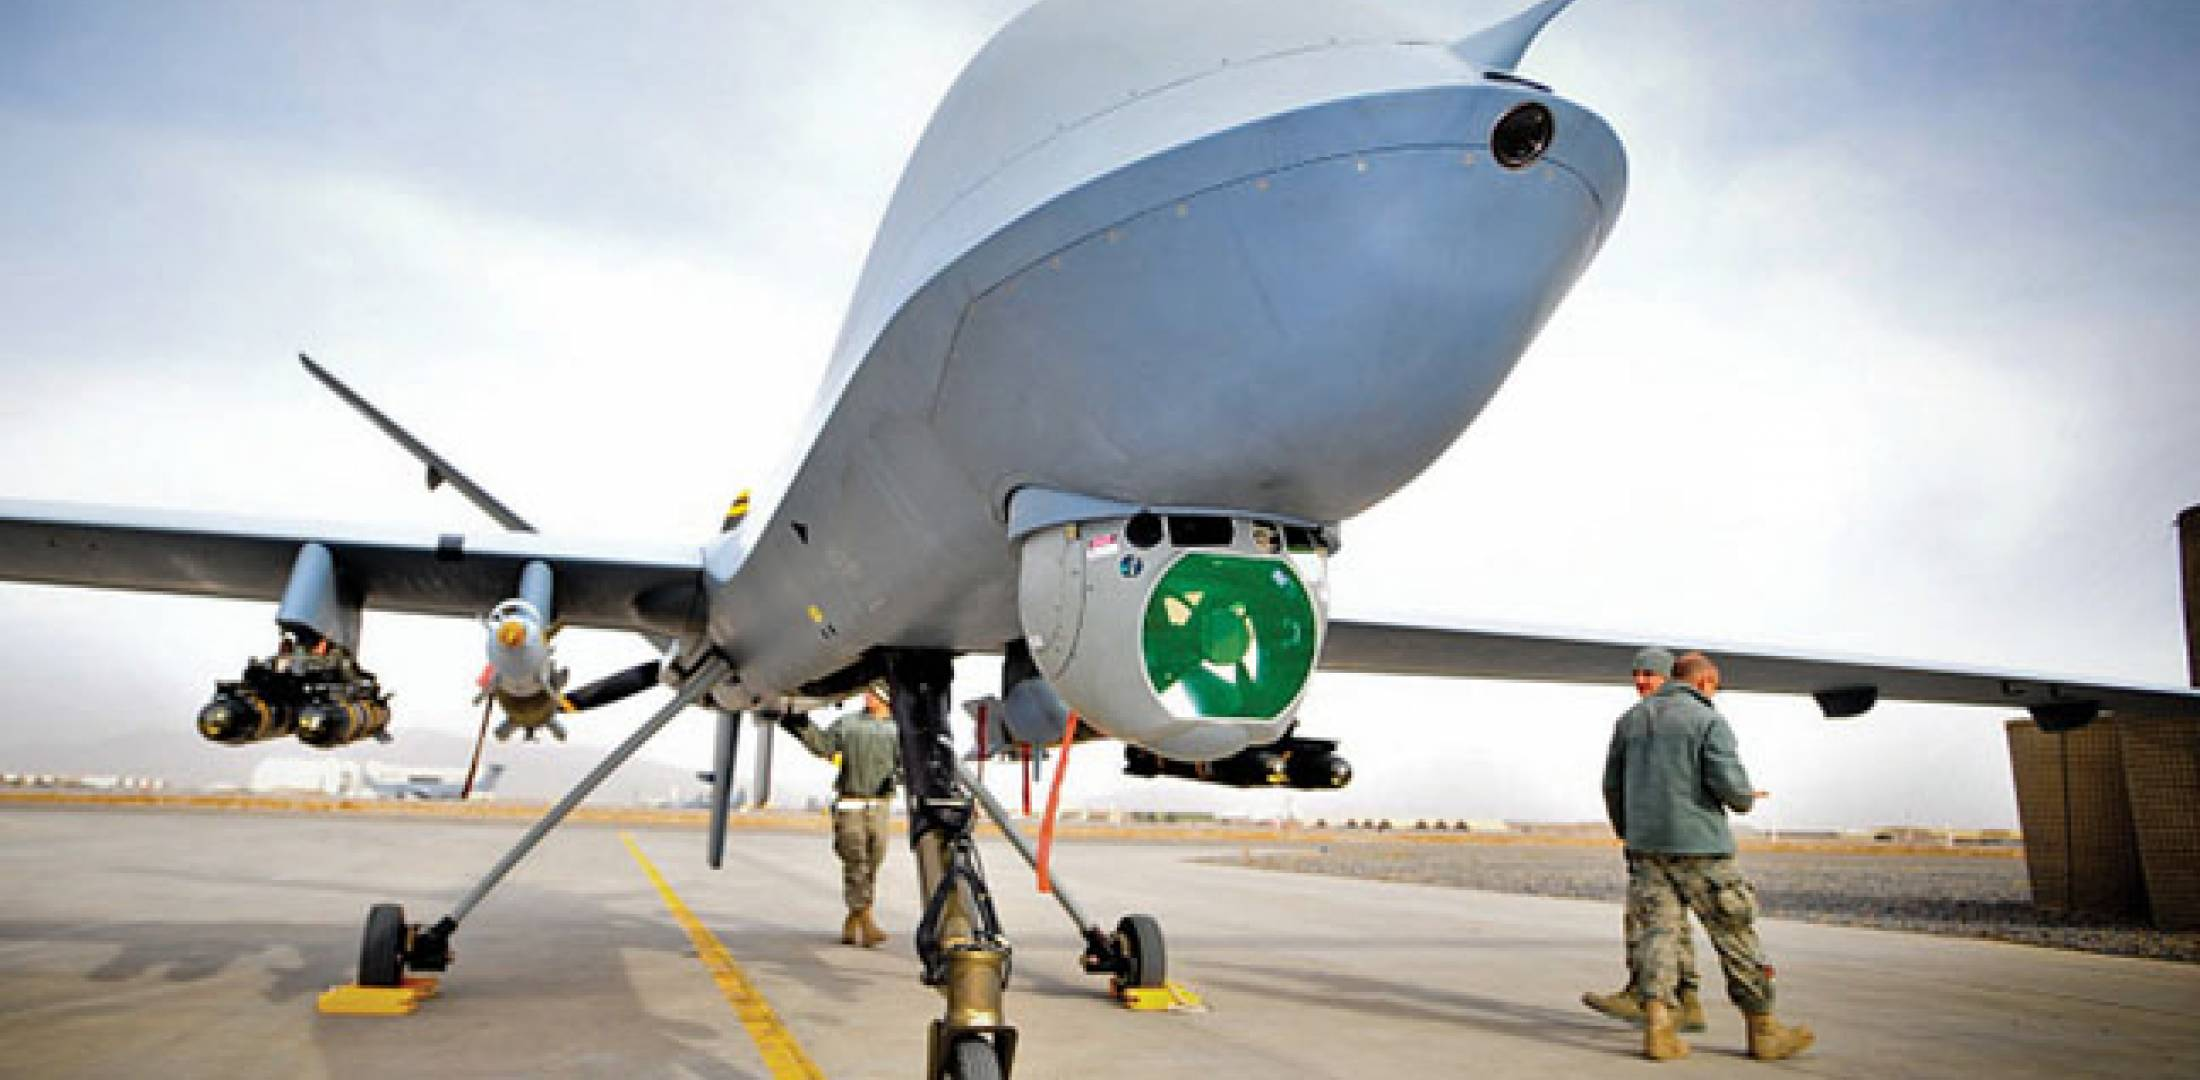 The Reaper can be armed with four Hellfire missiles and two GBU-12 laser-guided 250-pound bombs. The RAF usually flies with all four missiles, but only one bomb. The UAV's Raytheon MTS-B sensor ball and laser rangefinder/designator is beneath the nose, with the satcom antenna above.